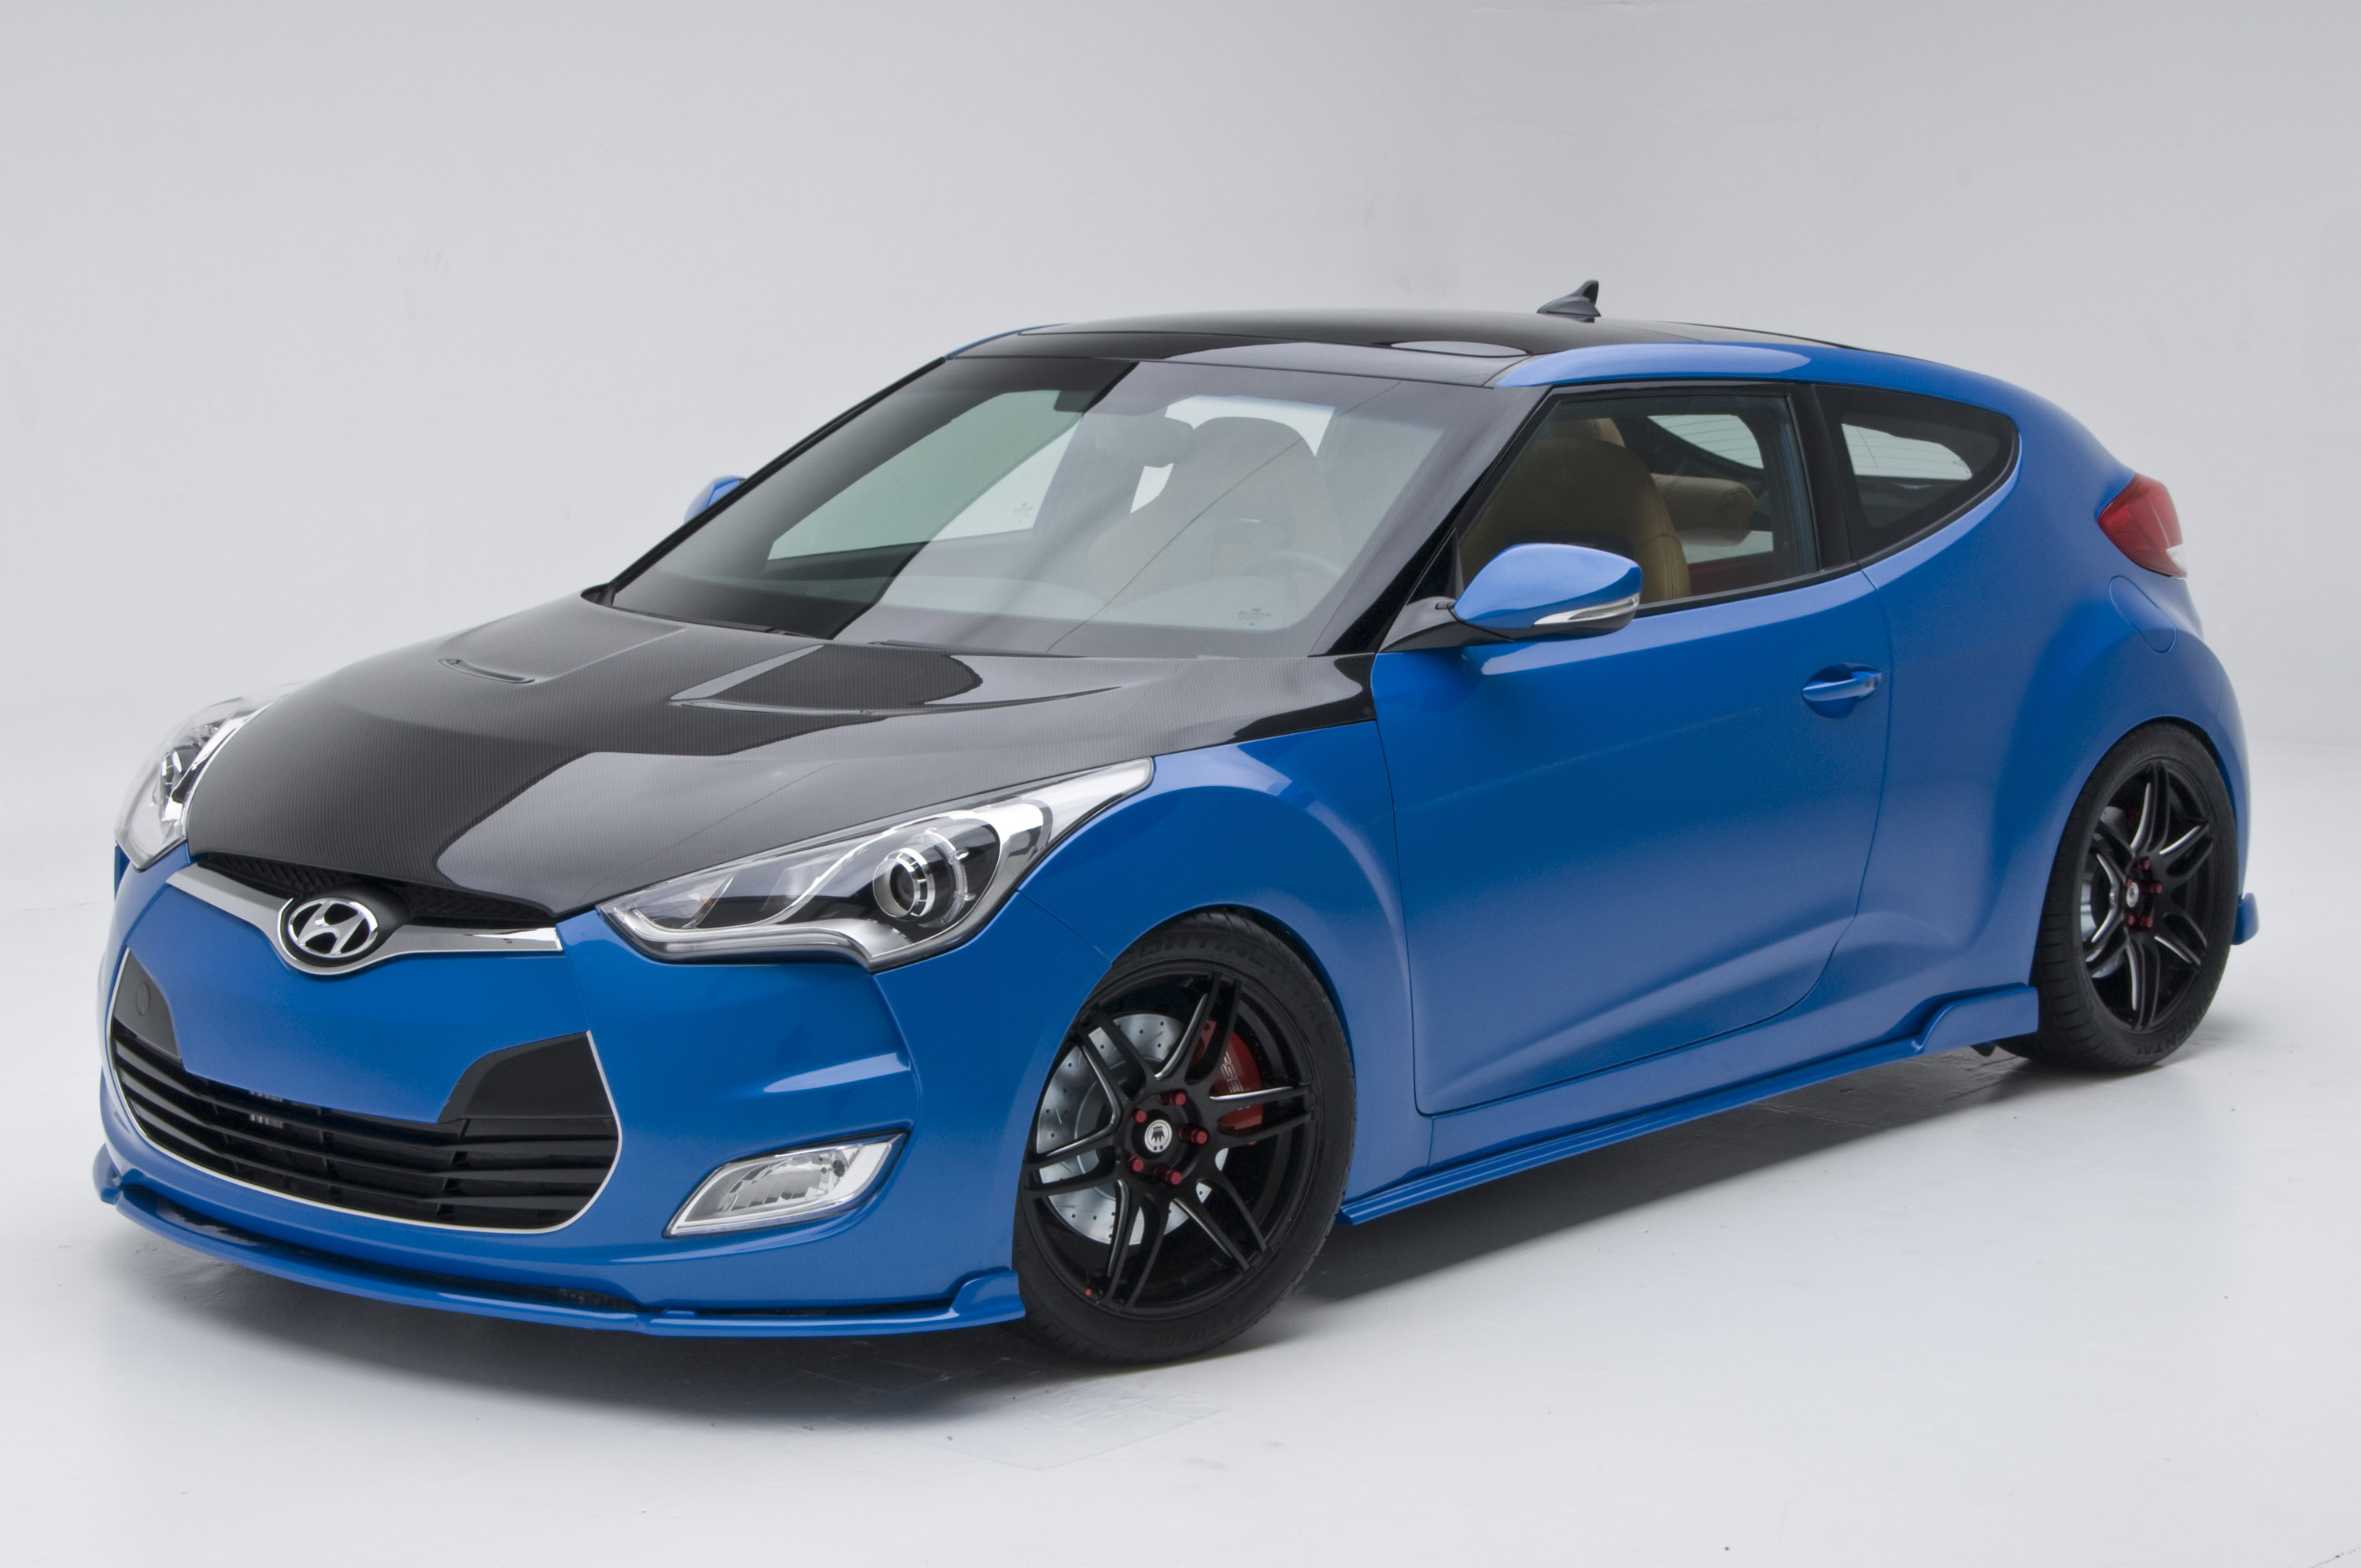 2011 pm lifestyle hyundai veloster tuning g wallpaper. Black Bedroom Furniture Sets. Home Design Ideas